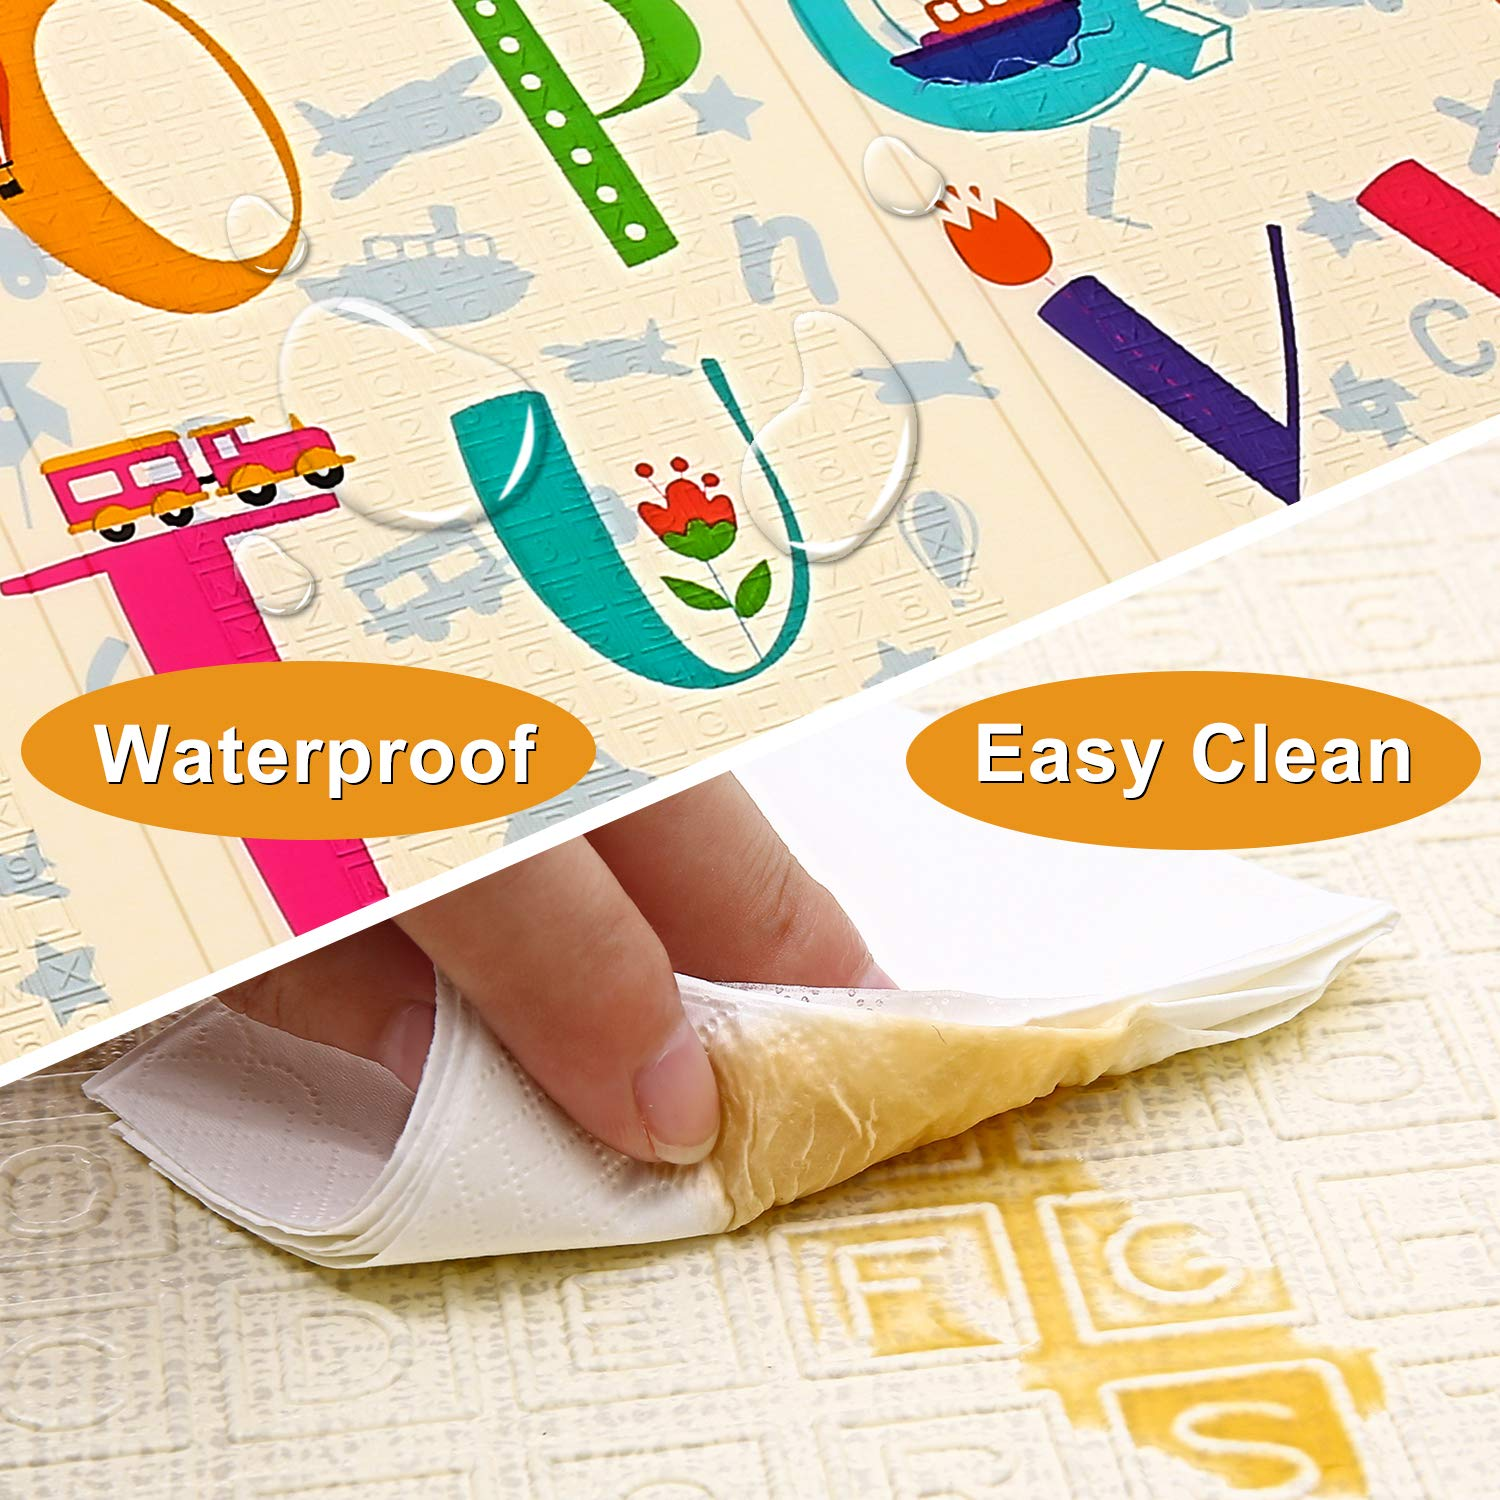 Baby Play Mat Extra Large Baby Mat Folding Foam Playmat Kids Crawling Mat Reversible Non Toxic Waterproof for Infants Toddlers Thicker 0.6inch Beige